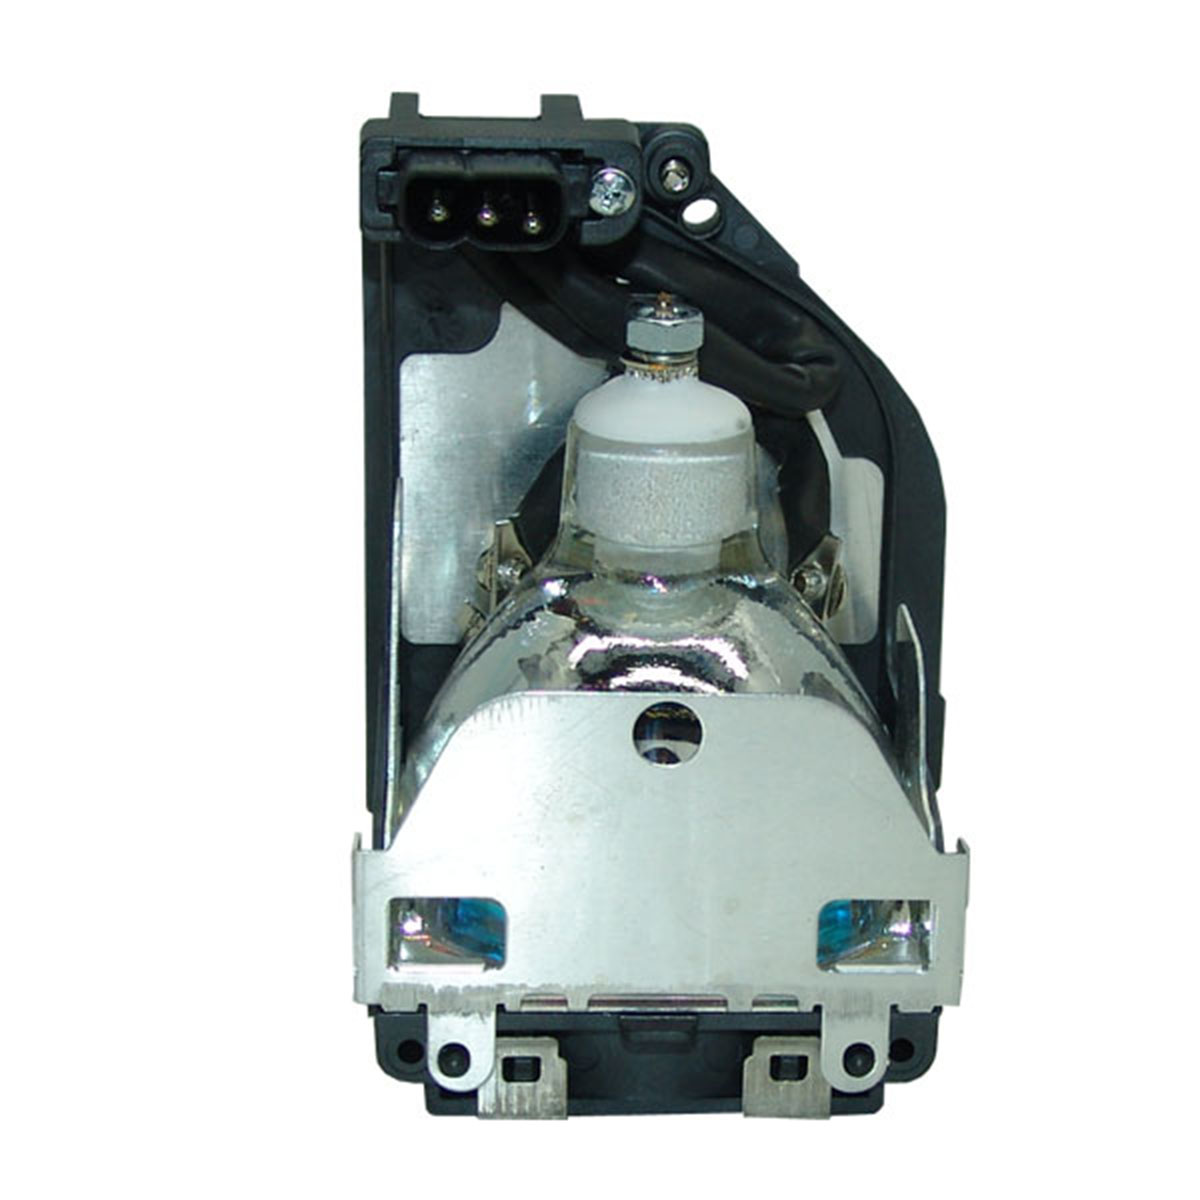 Lutema Platinum Bulb for Sanyo PLC-XU115W Projector Lamp with Housing (Original Philips Inside) - image 4 of 5